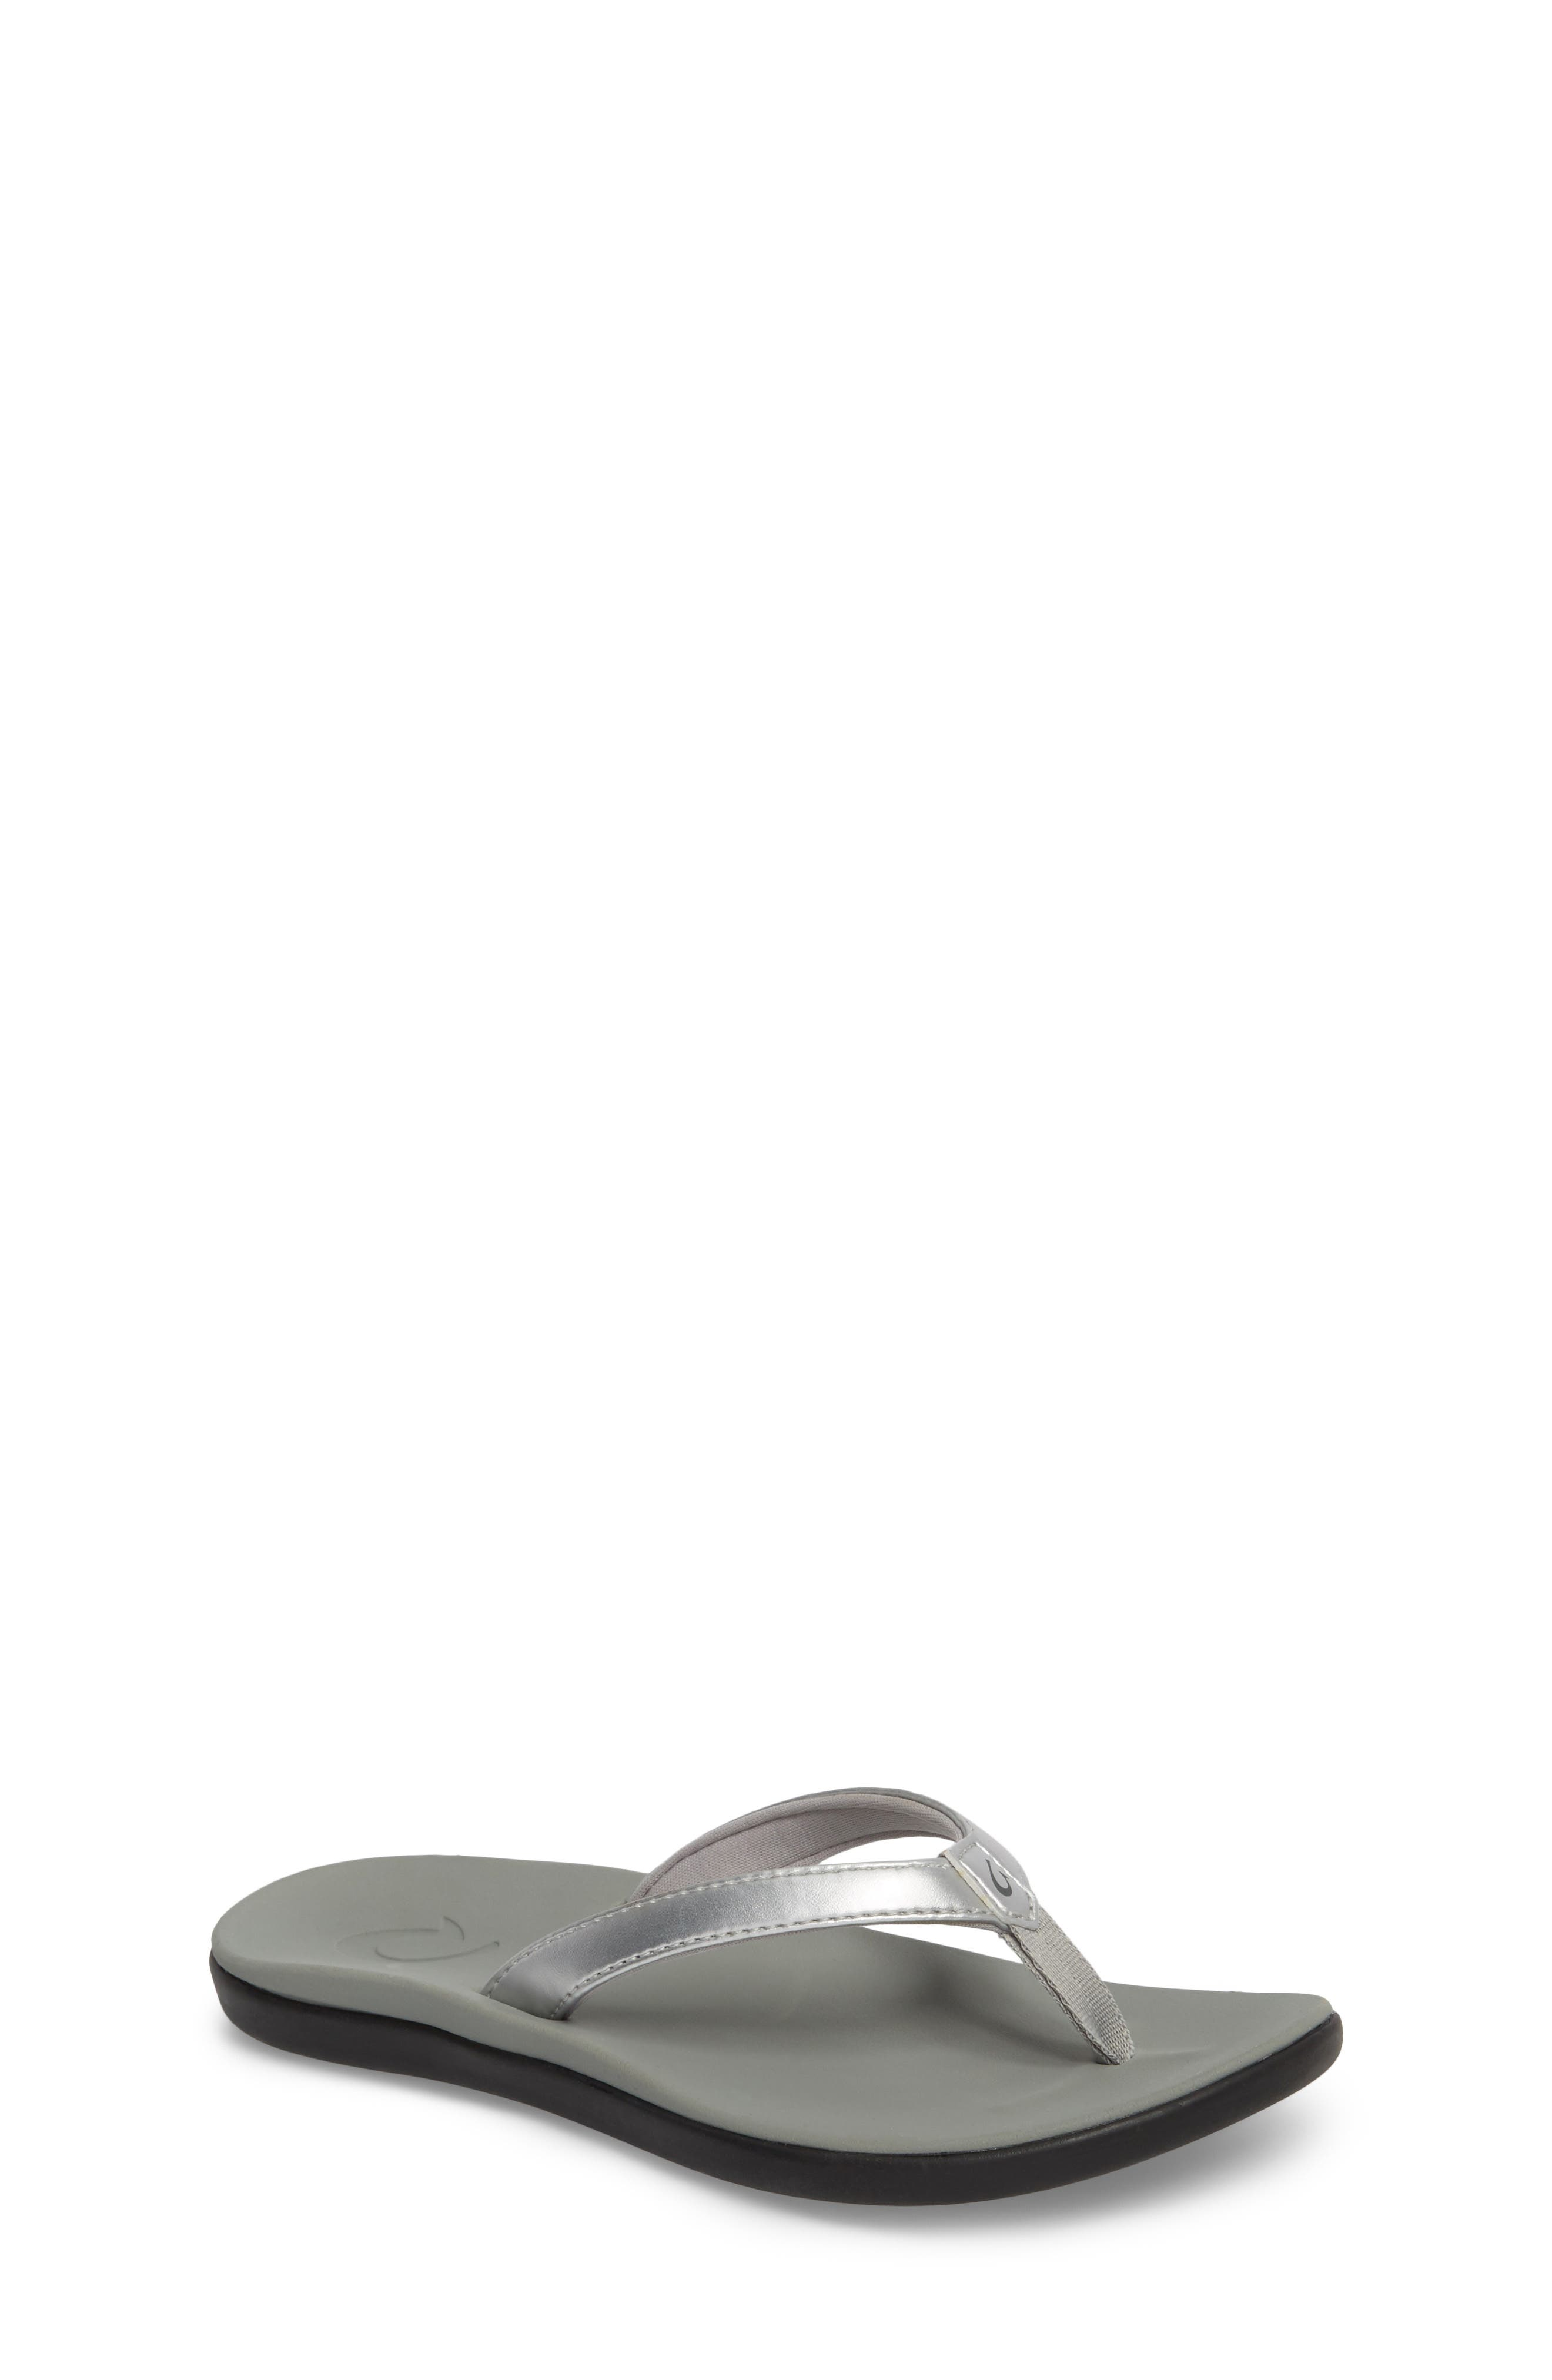 Ho'opio Flip Flop,                         Main,                         color, SILVER STAR/ PALE GREY